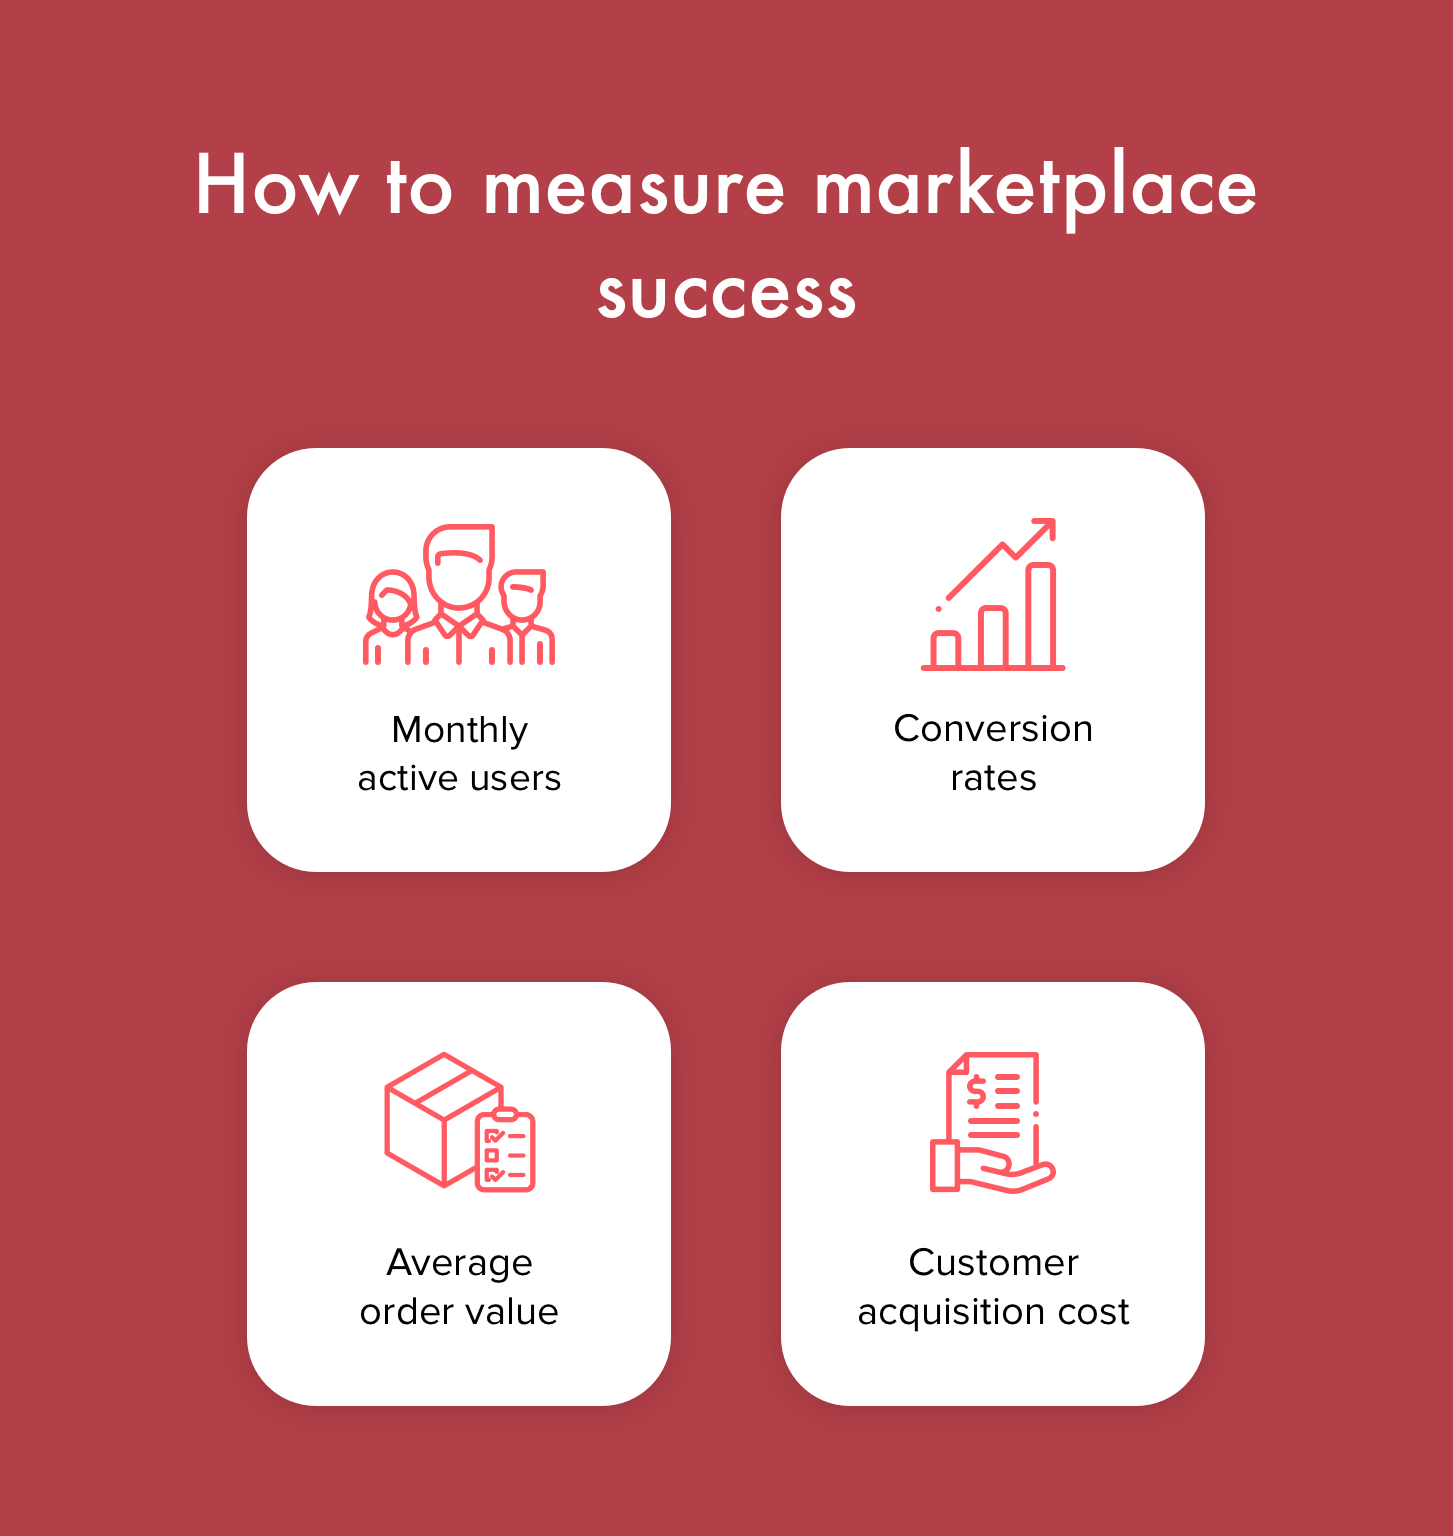 How to measure marketplace success